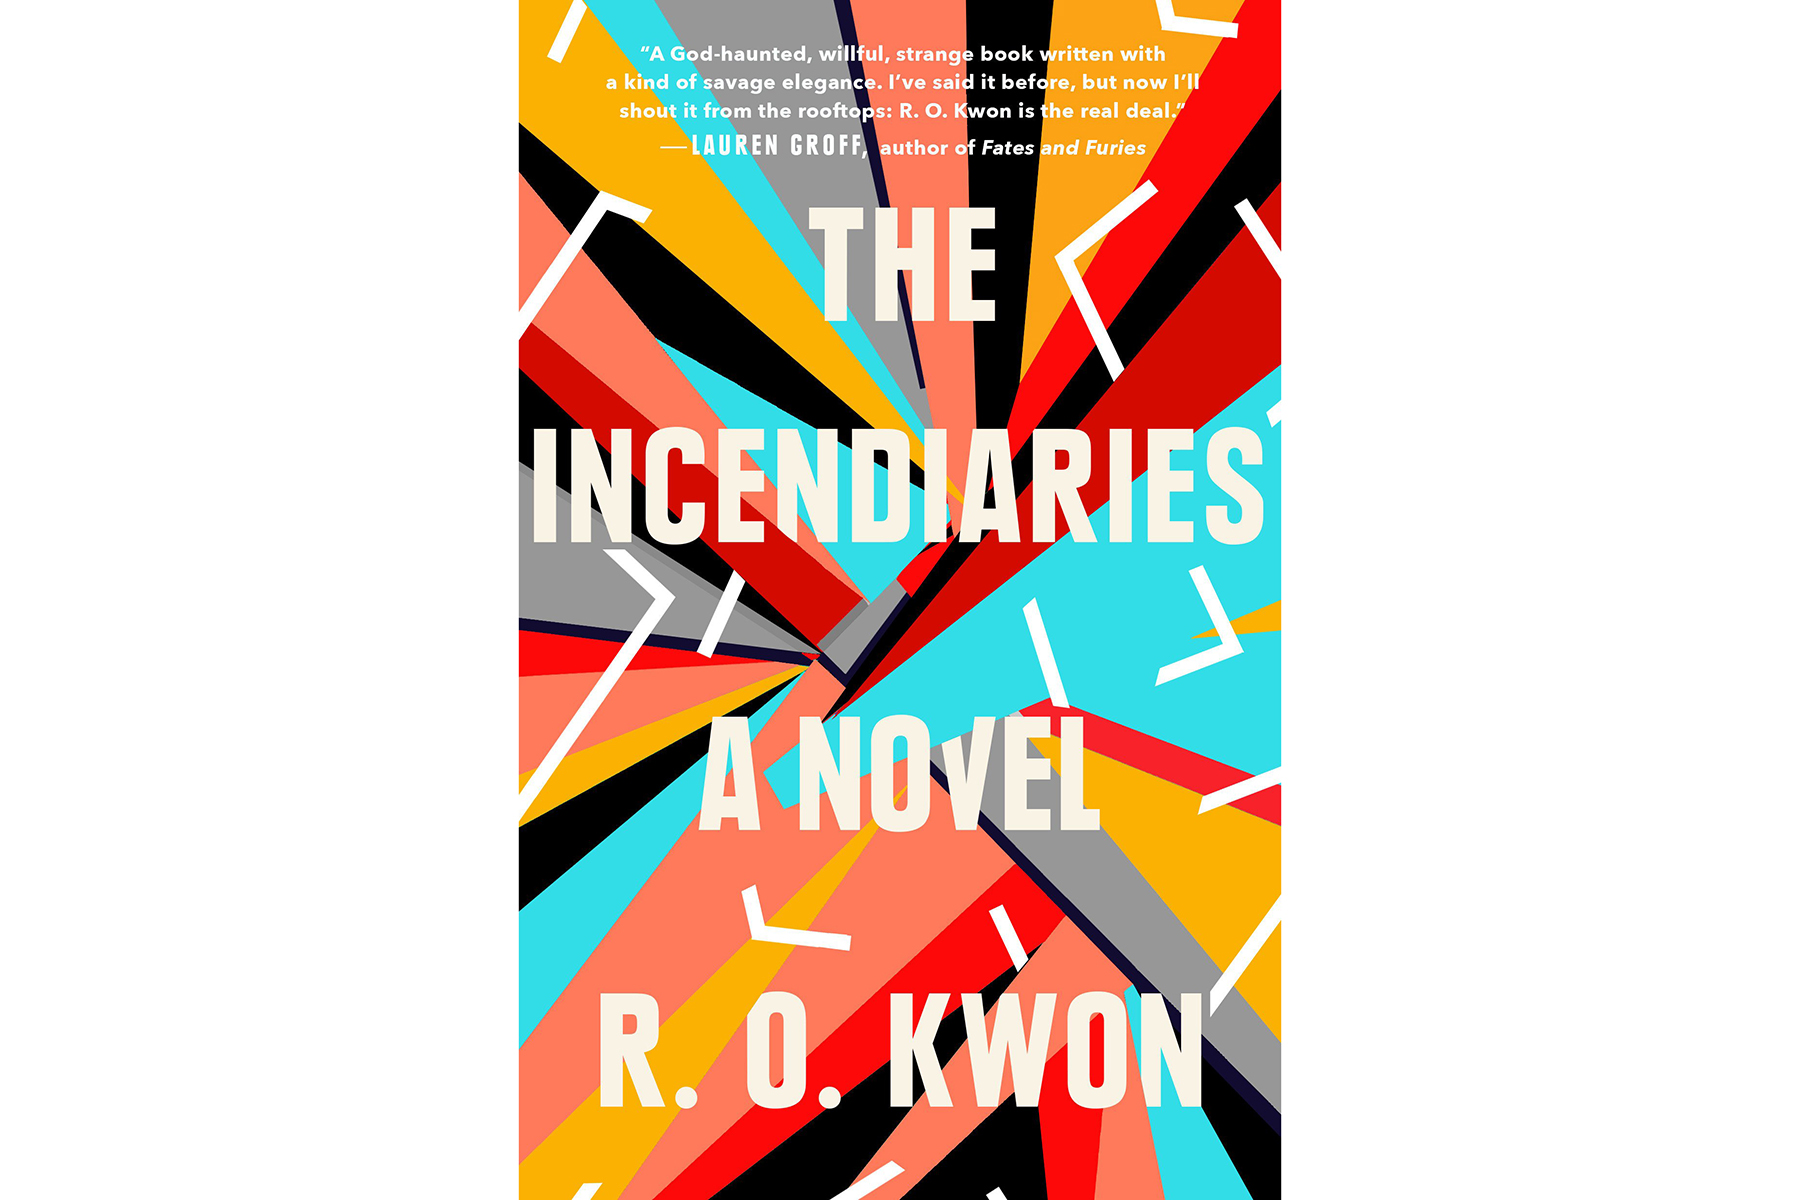 The Incendiaries, by R.O. Kwon